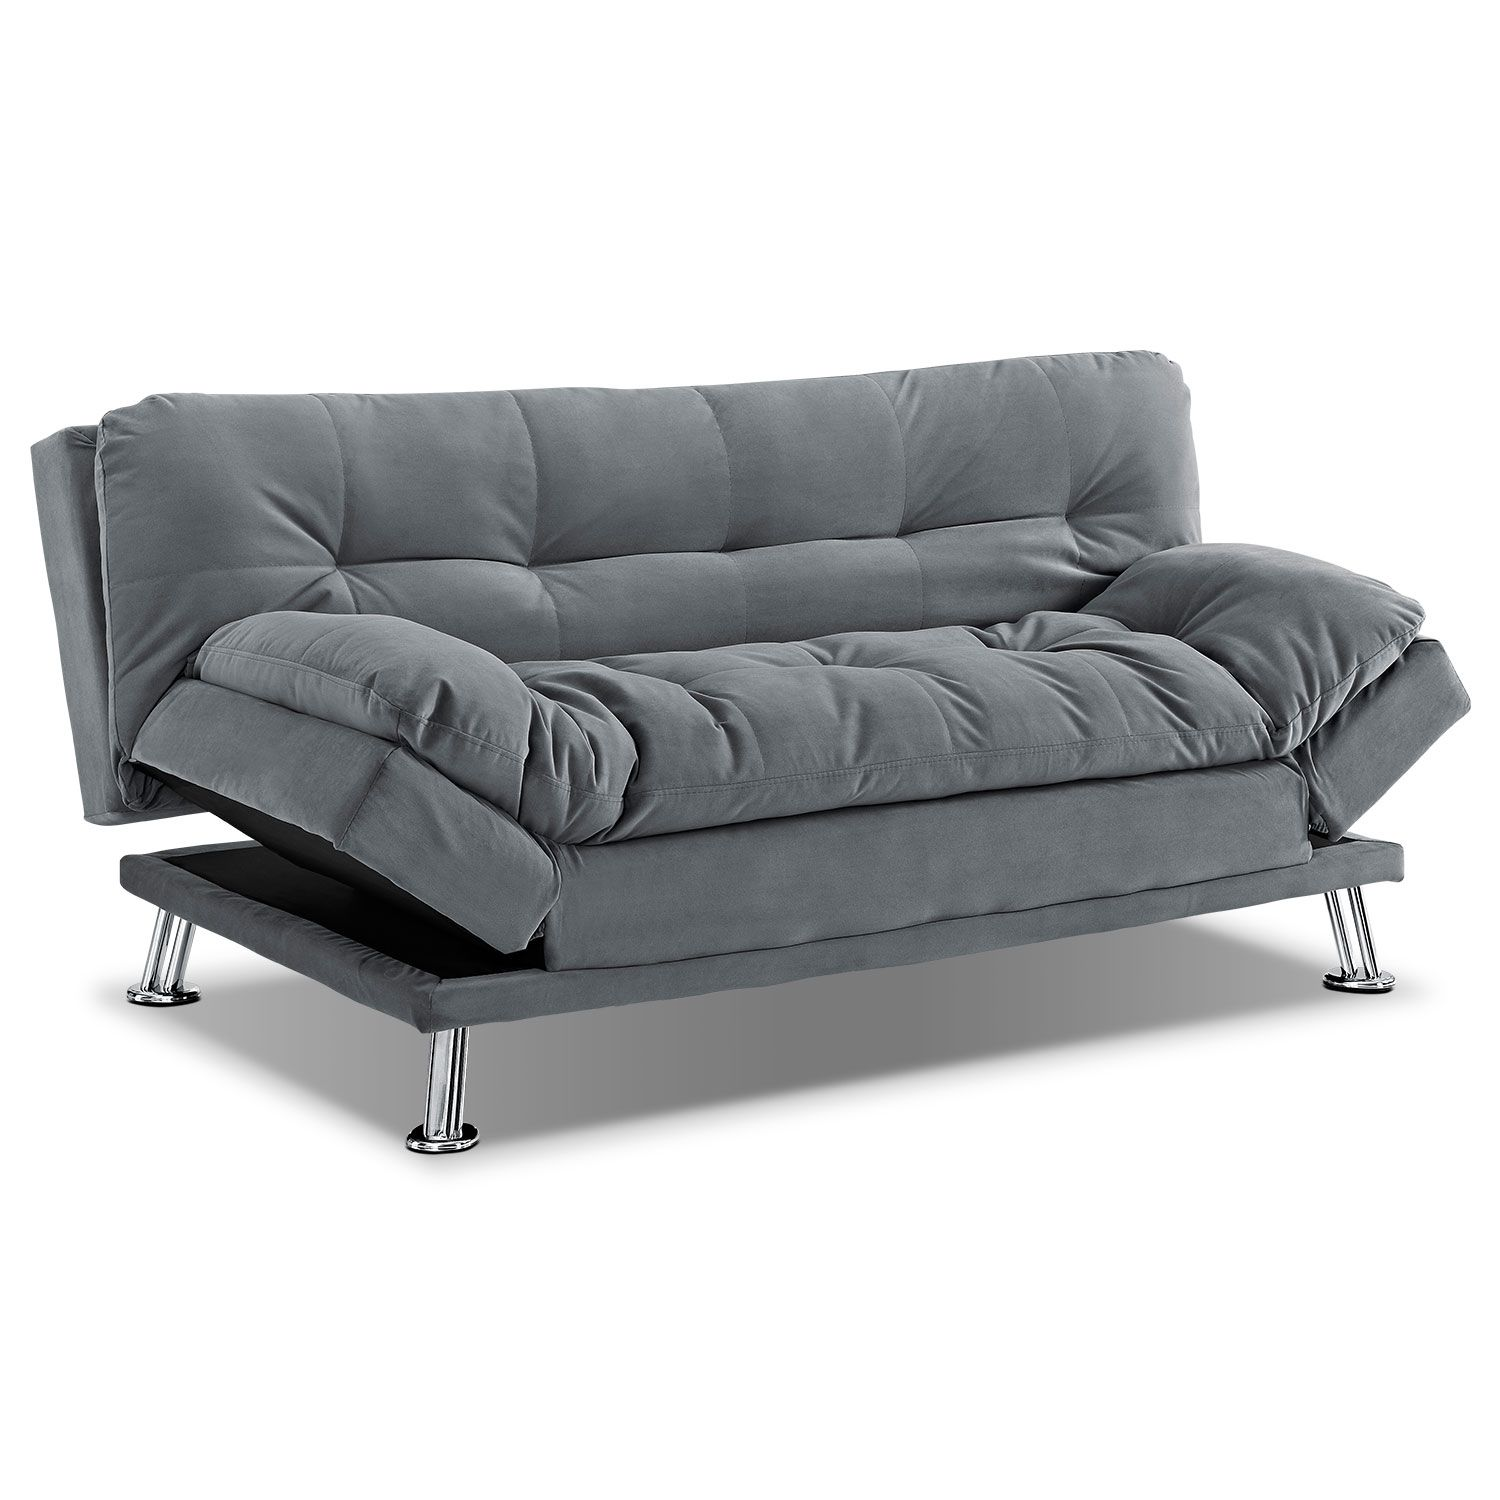 Waltz Gray Futon Sofa Bed Value City